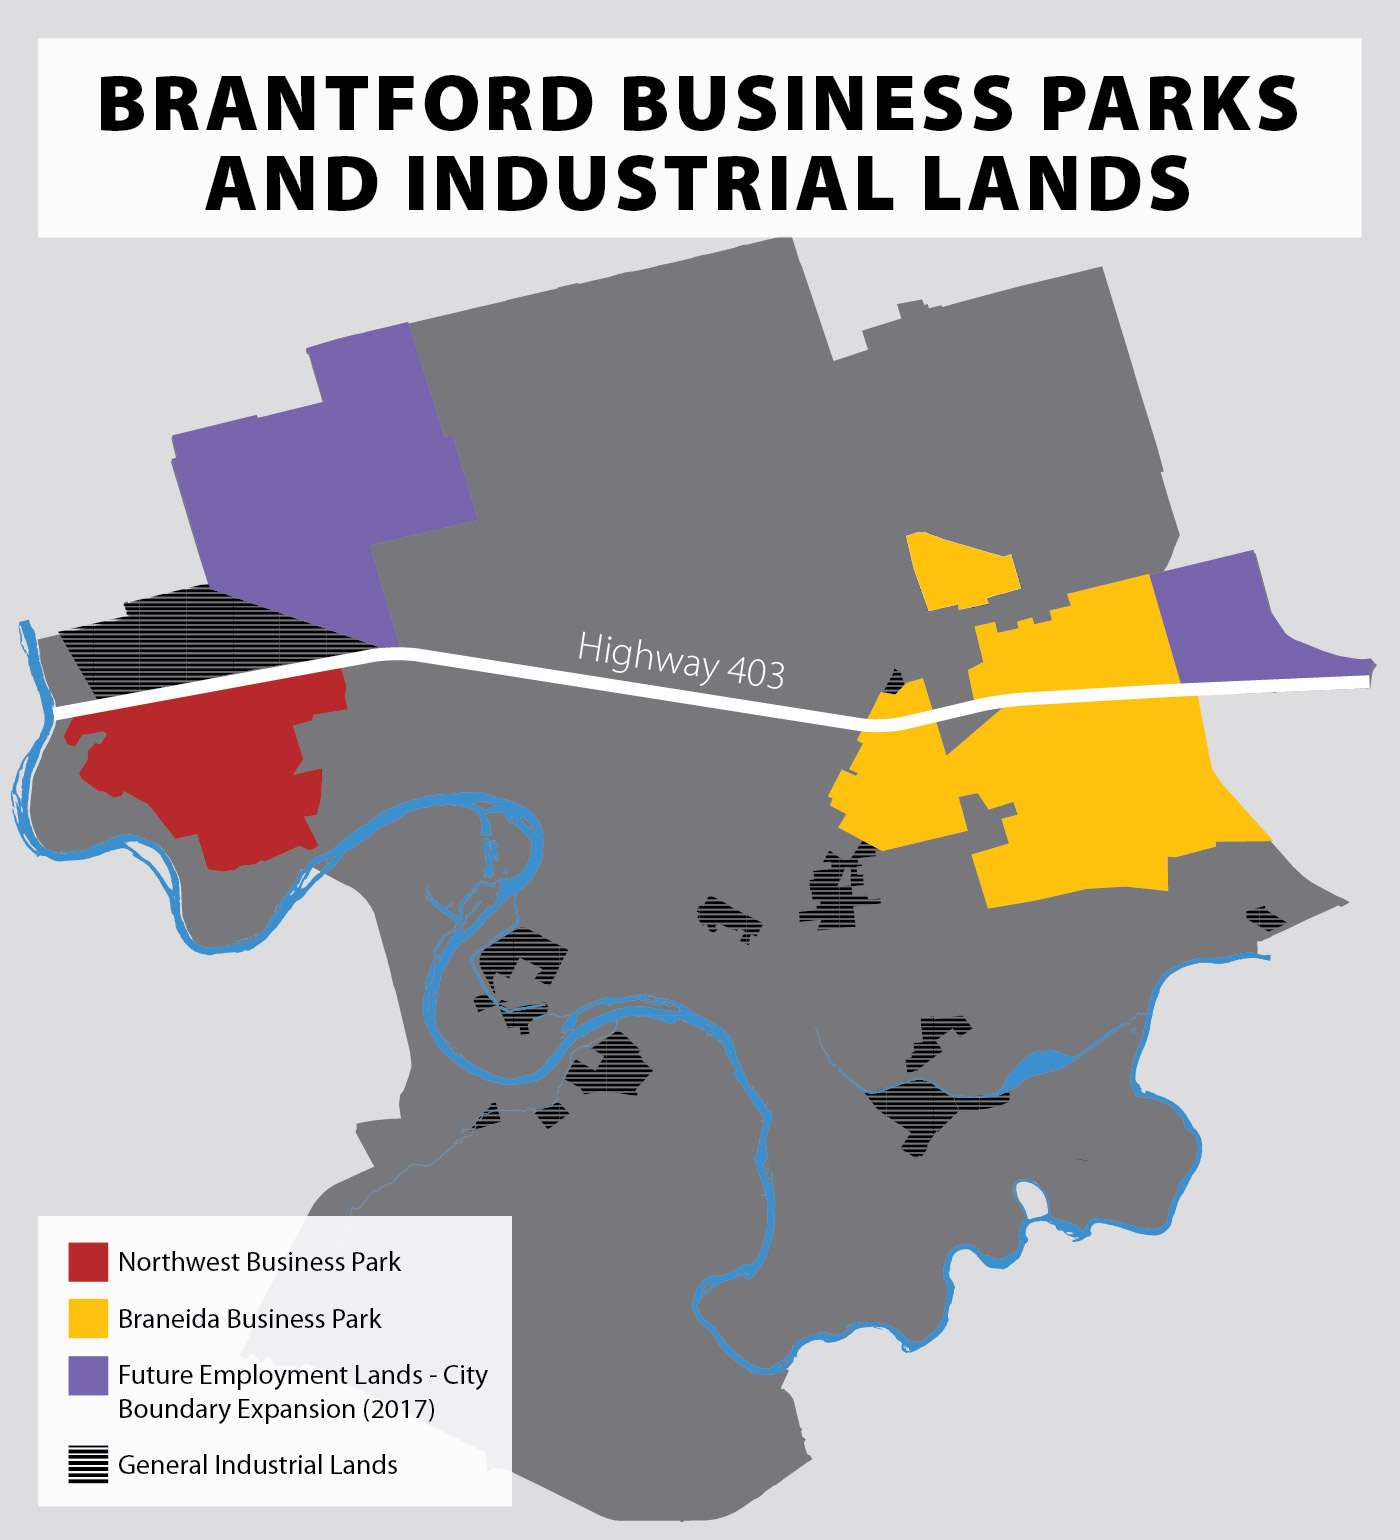 map of business parks and industrial land in Brantford